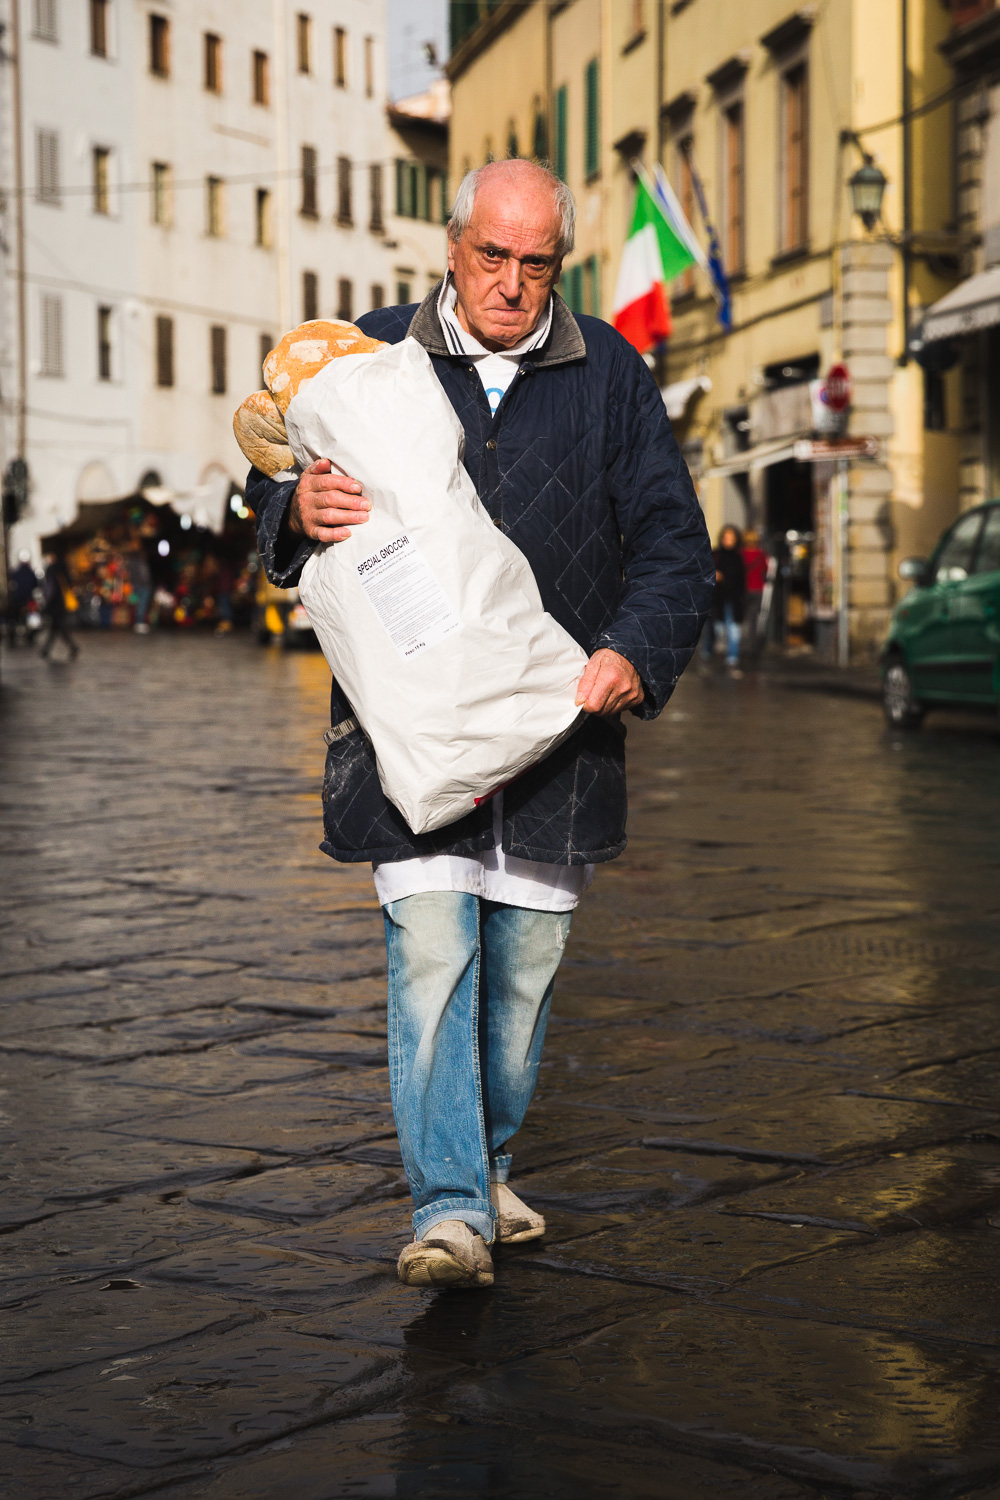 cp firenze old man bread site.jpg